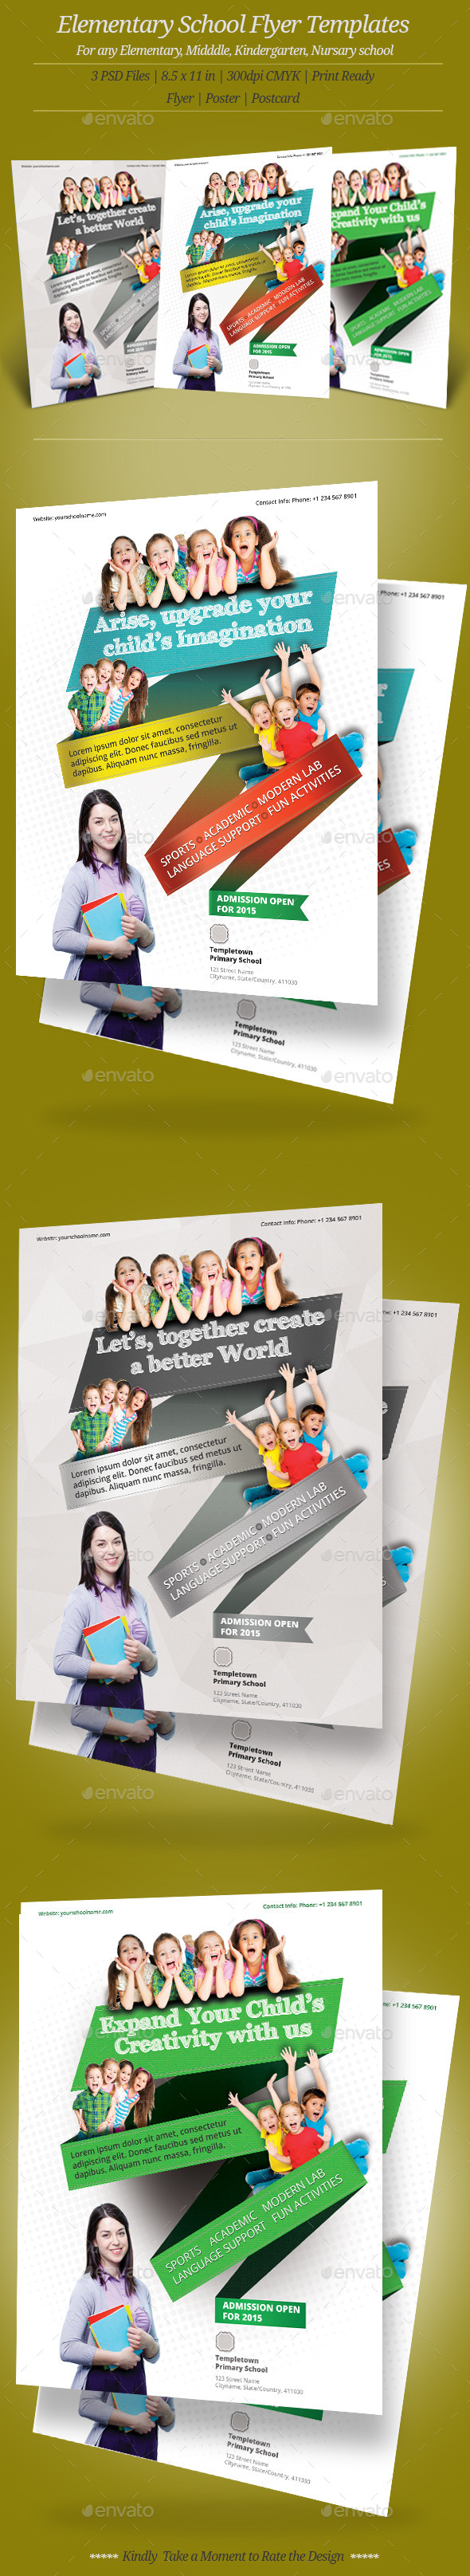 GraphicRiver Elementary School Flyer Templates 10160263